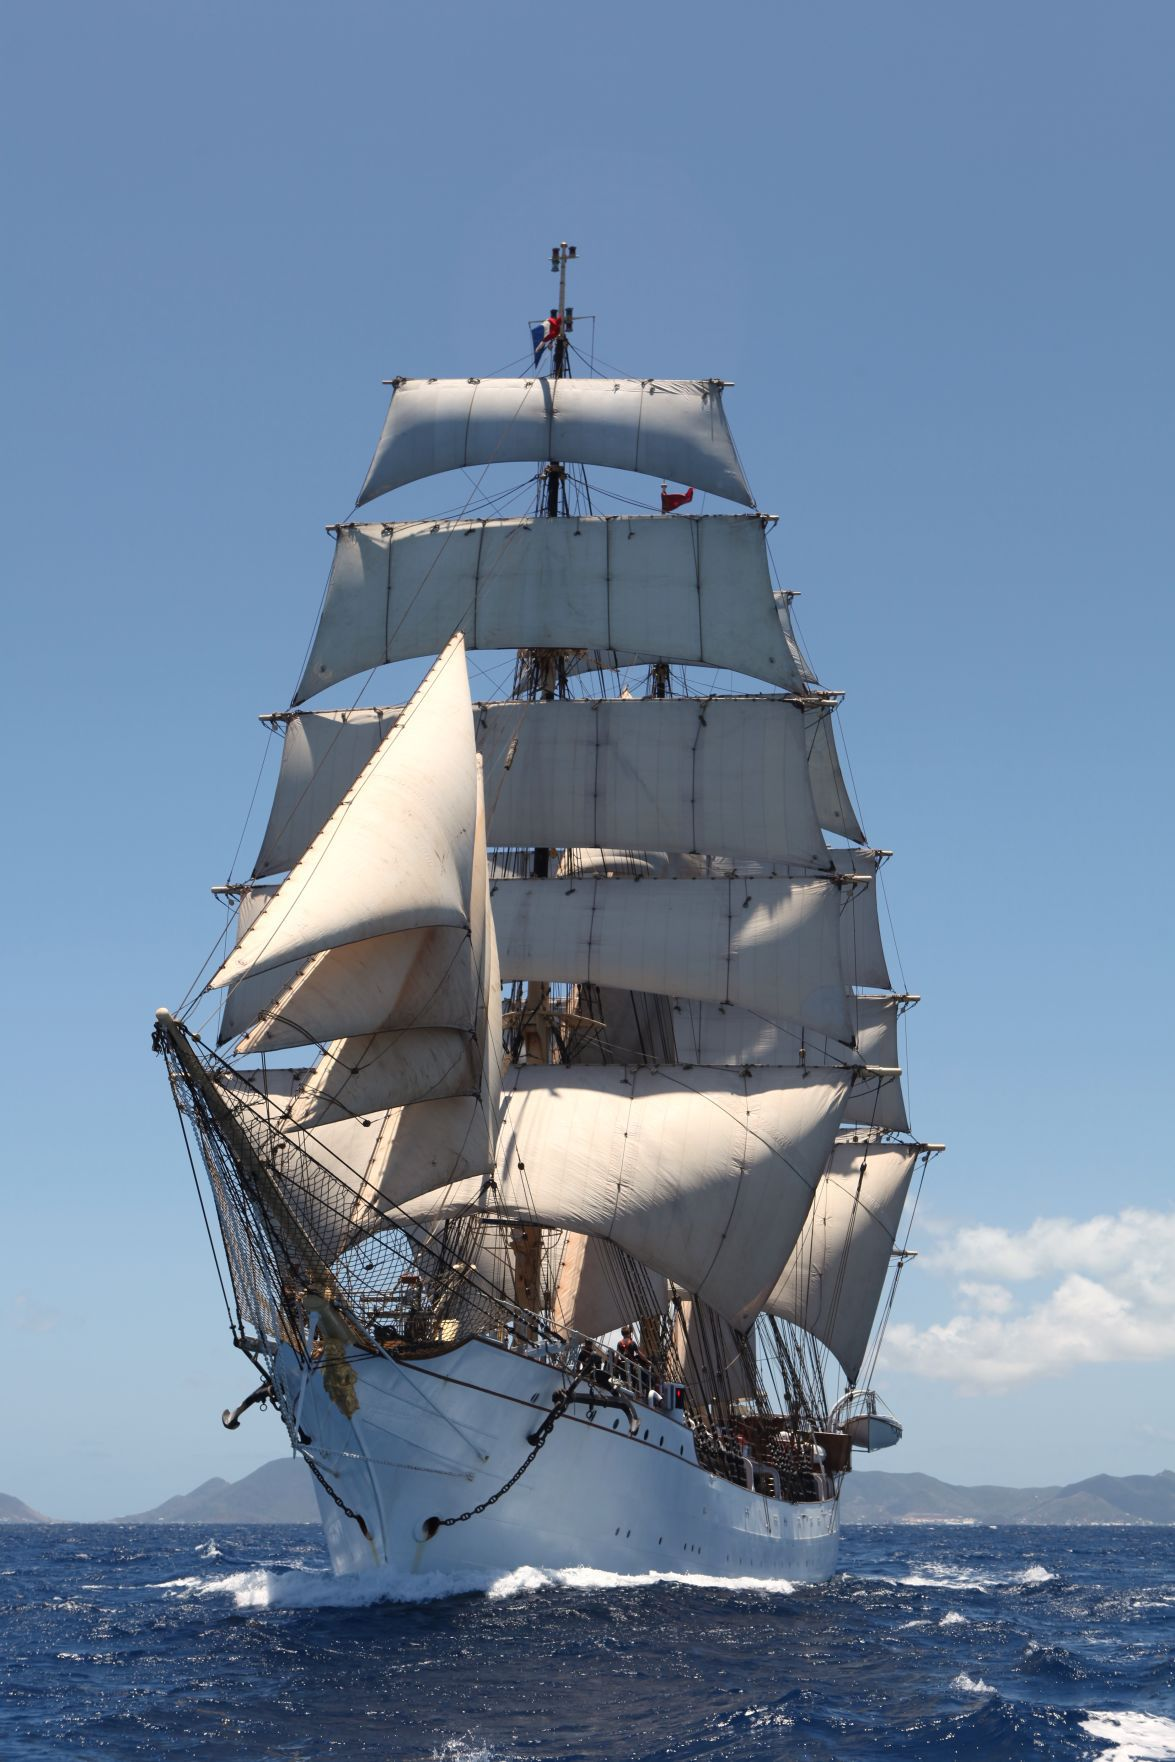 Danish sailing ship to arrive for Transfer Centennial | News ...